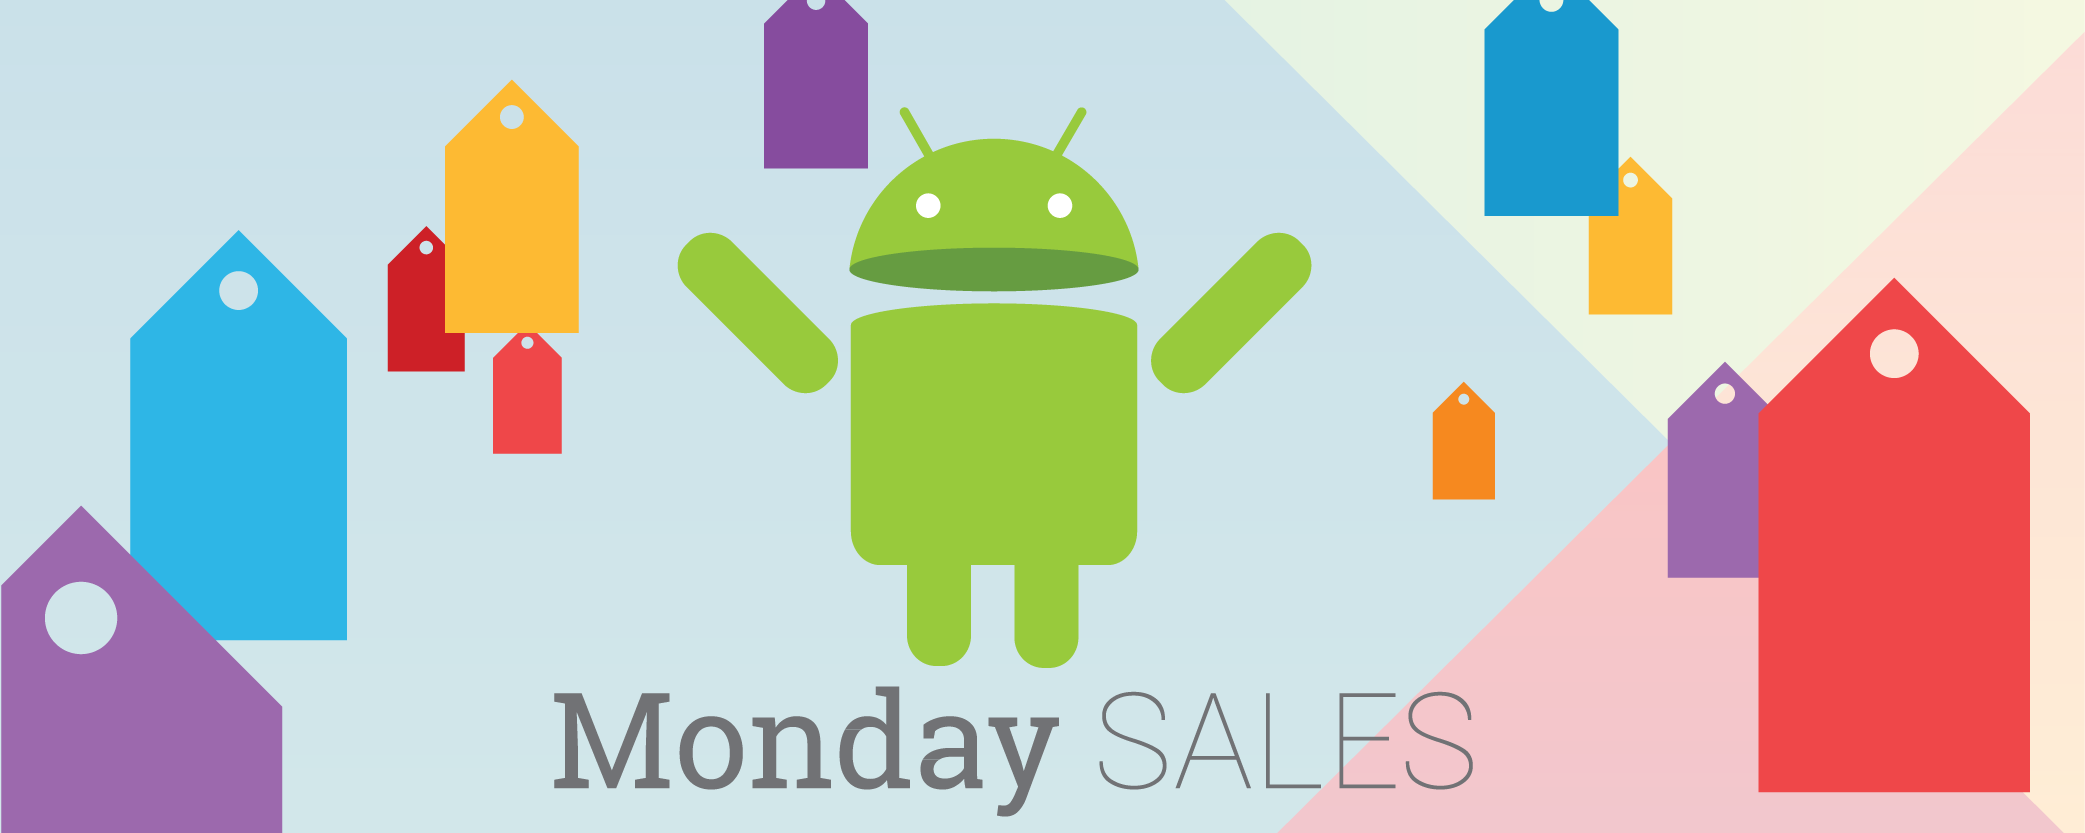 22 temporarily free and 52 on-sale apps and games for Monday